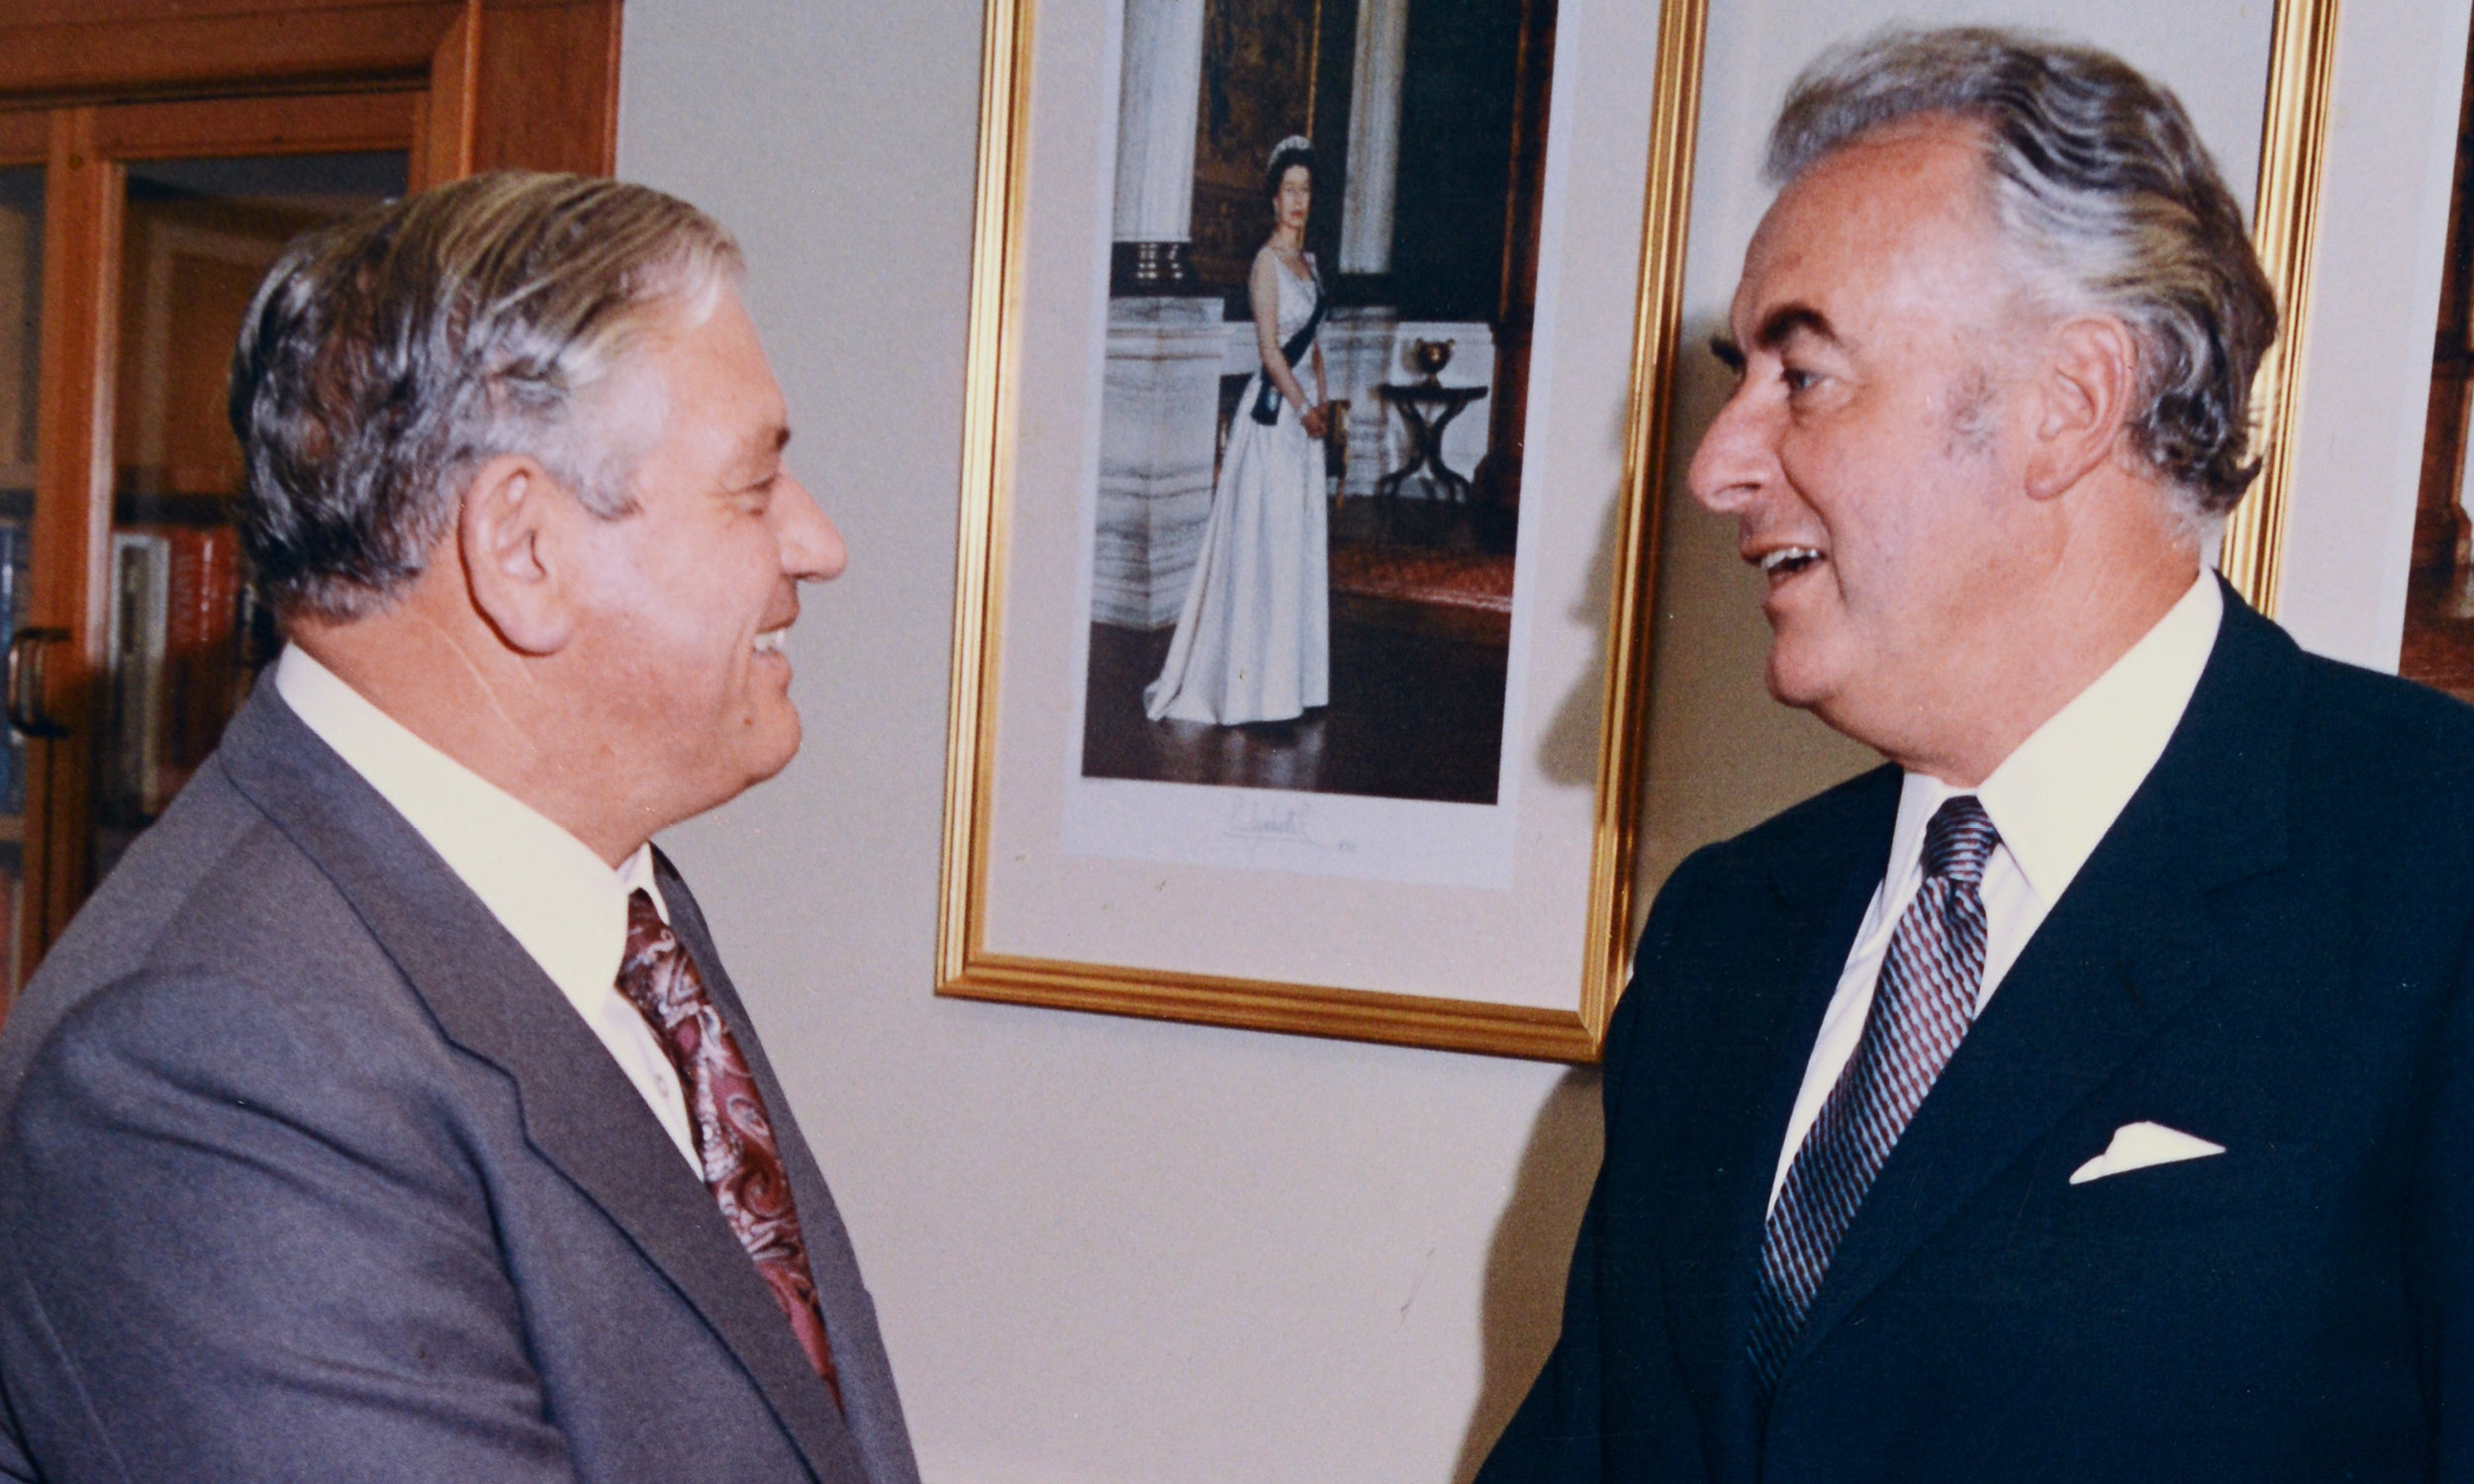 Remembering Norman Kirk: The Whitlam of New Zealand